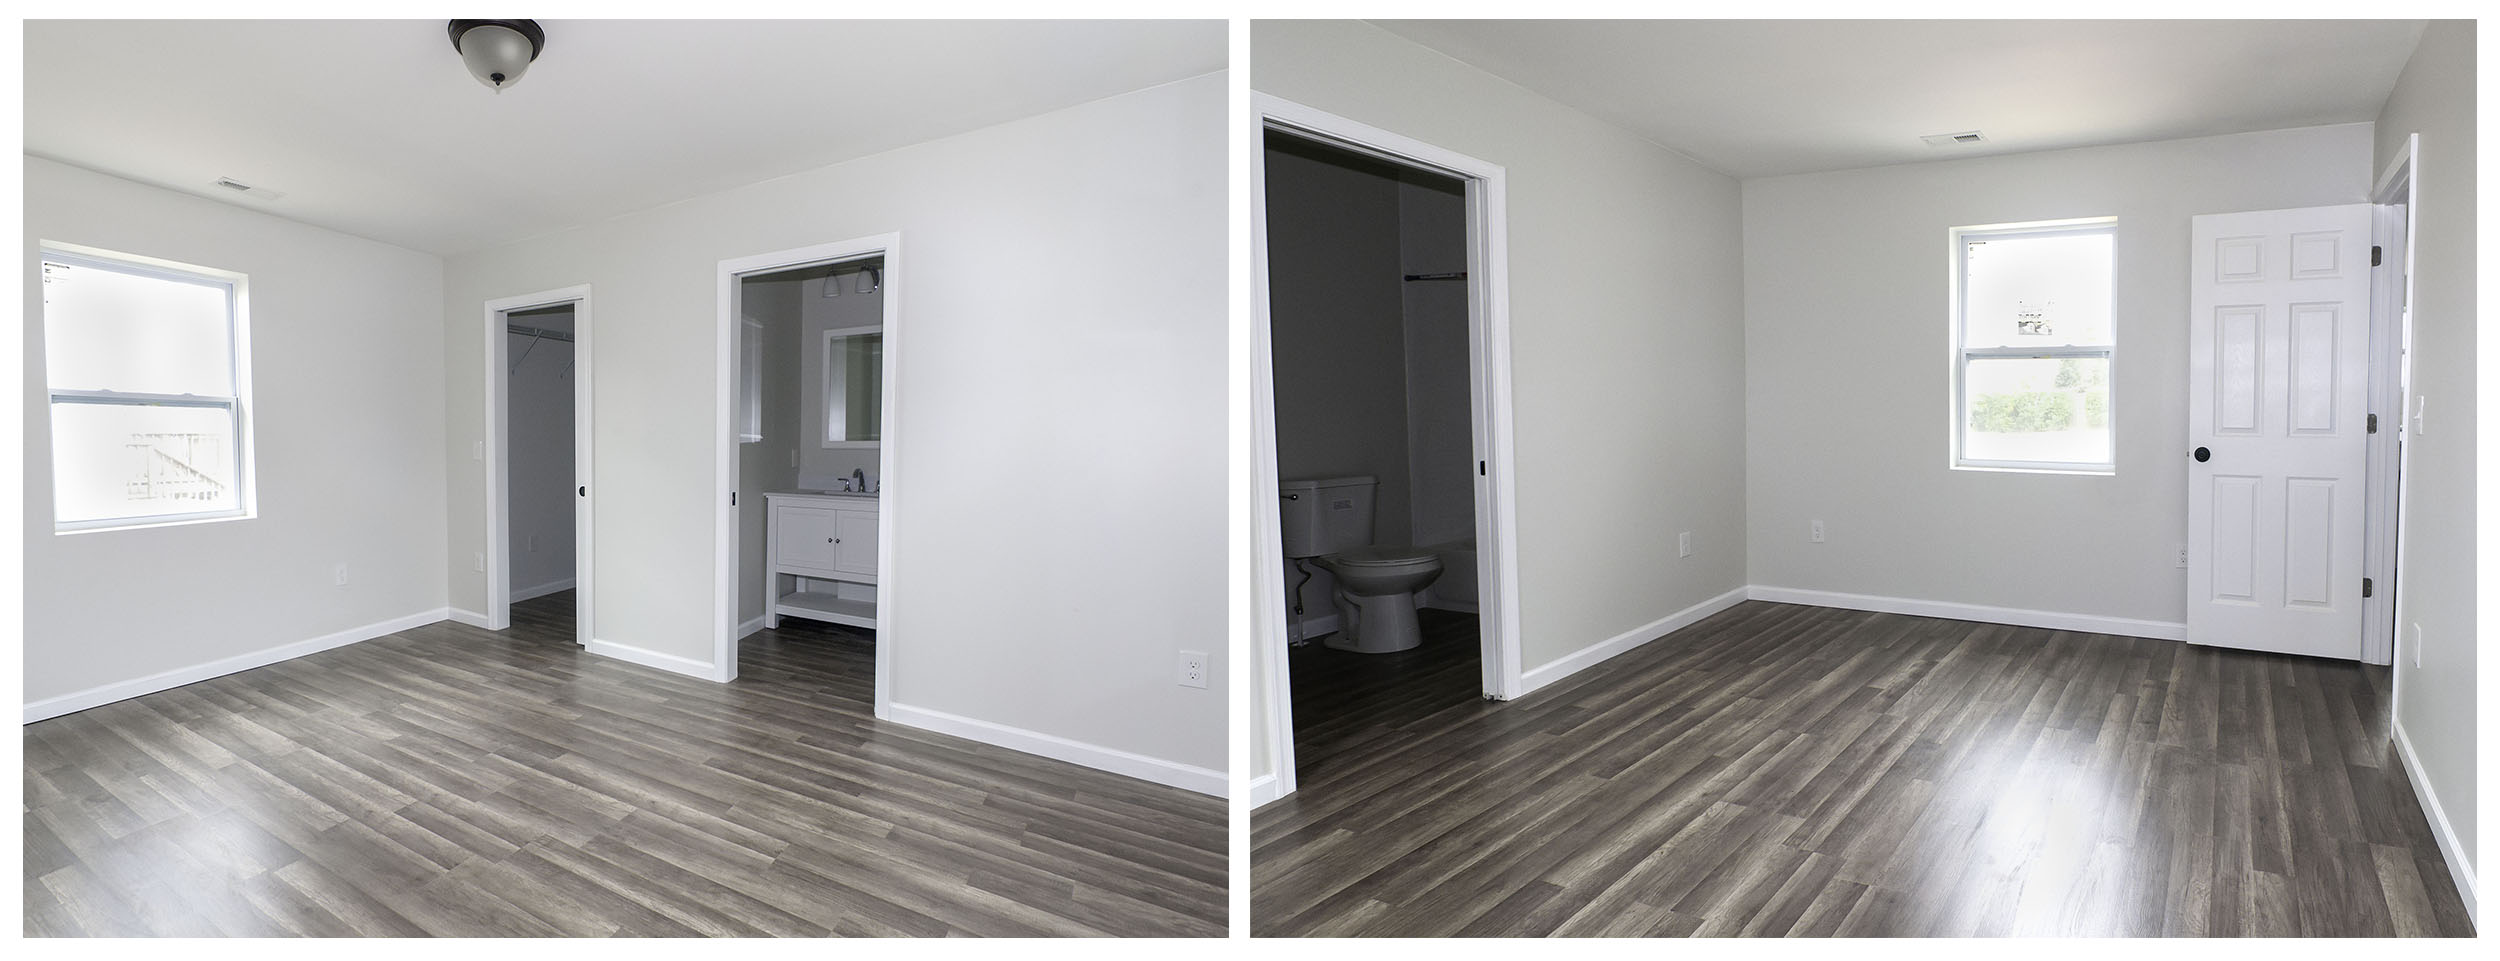 Londontown Master Bedroom comparison resize.jpg